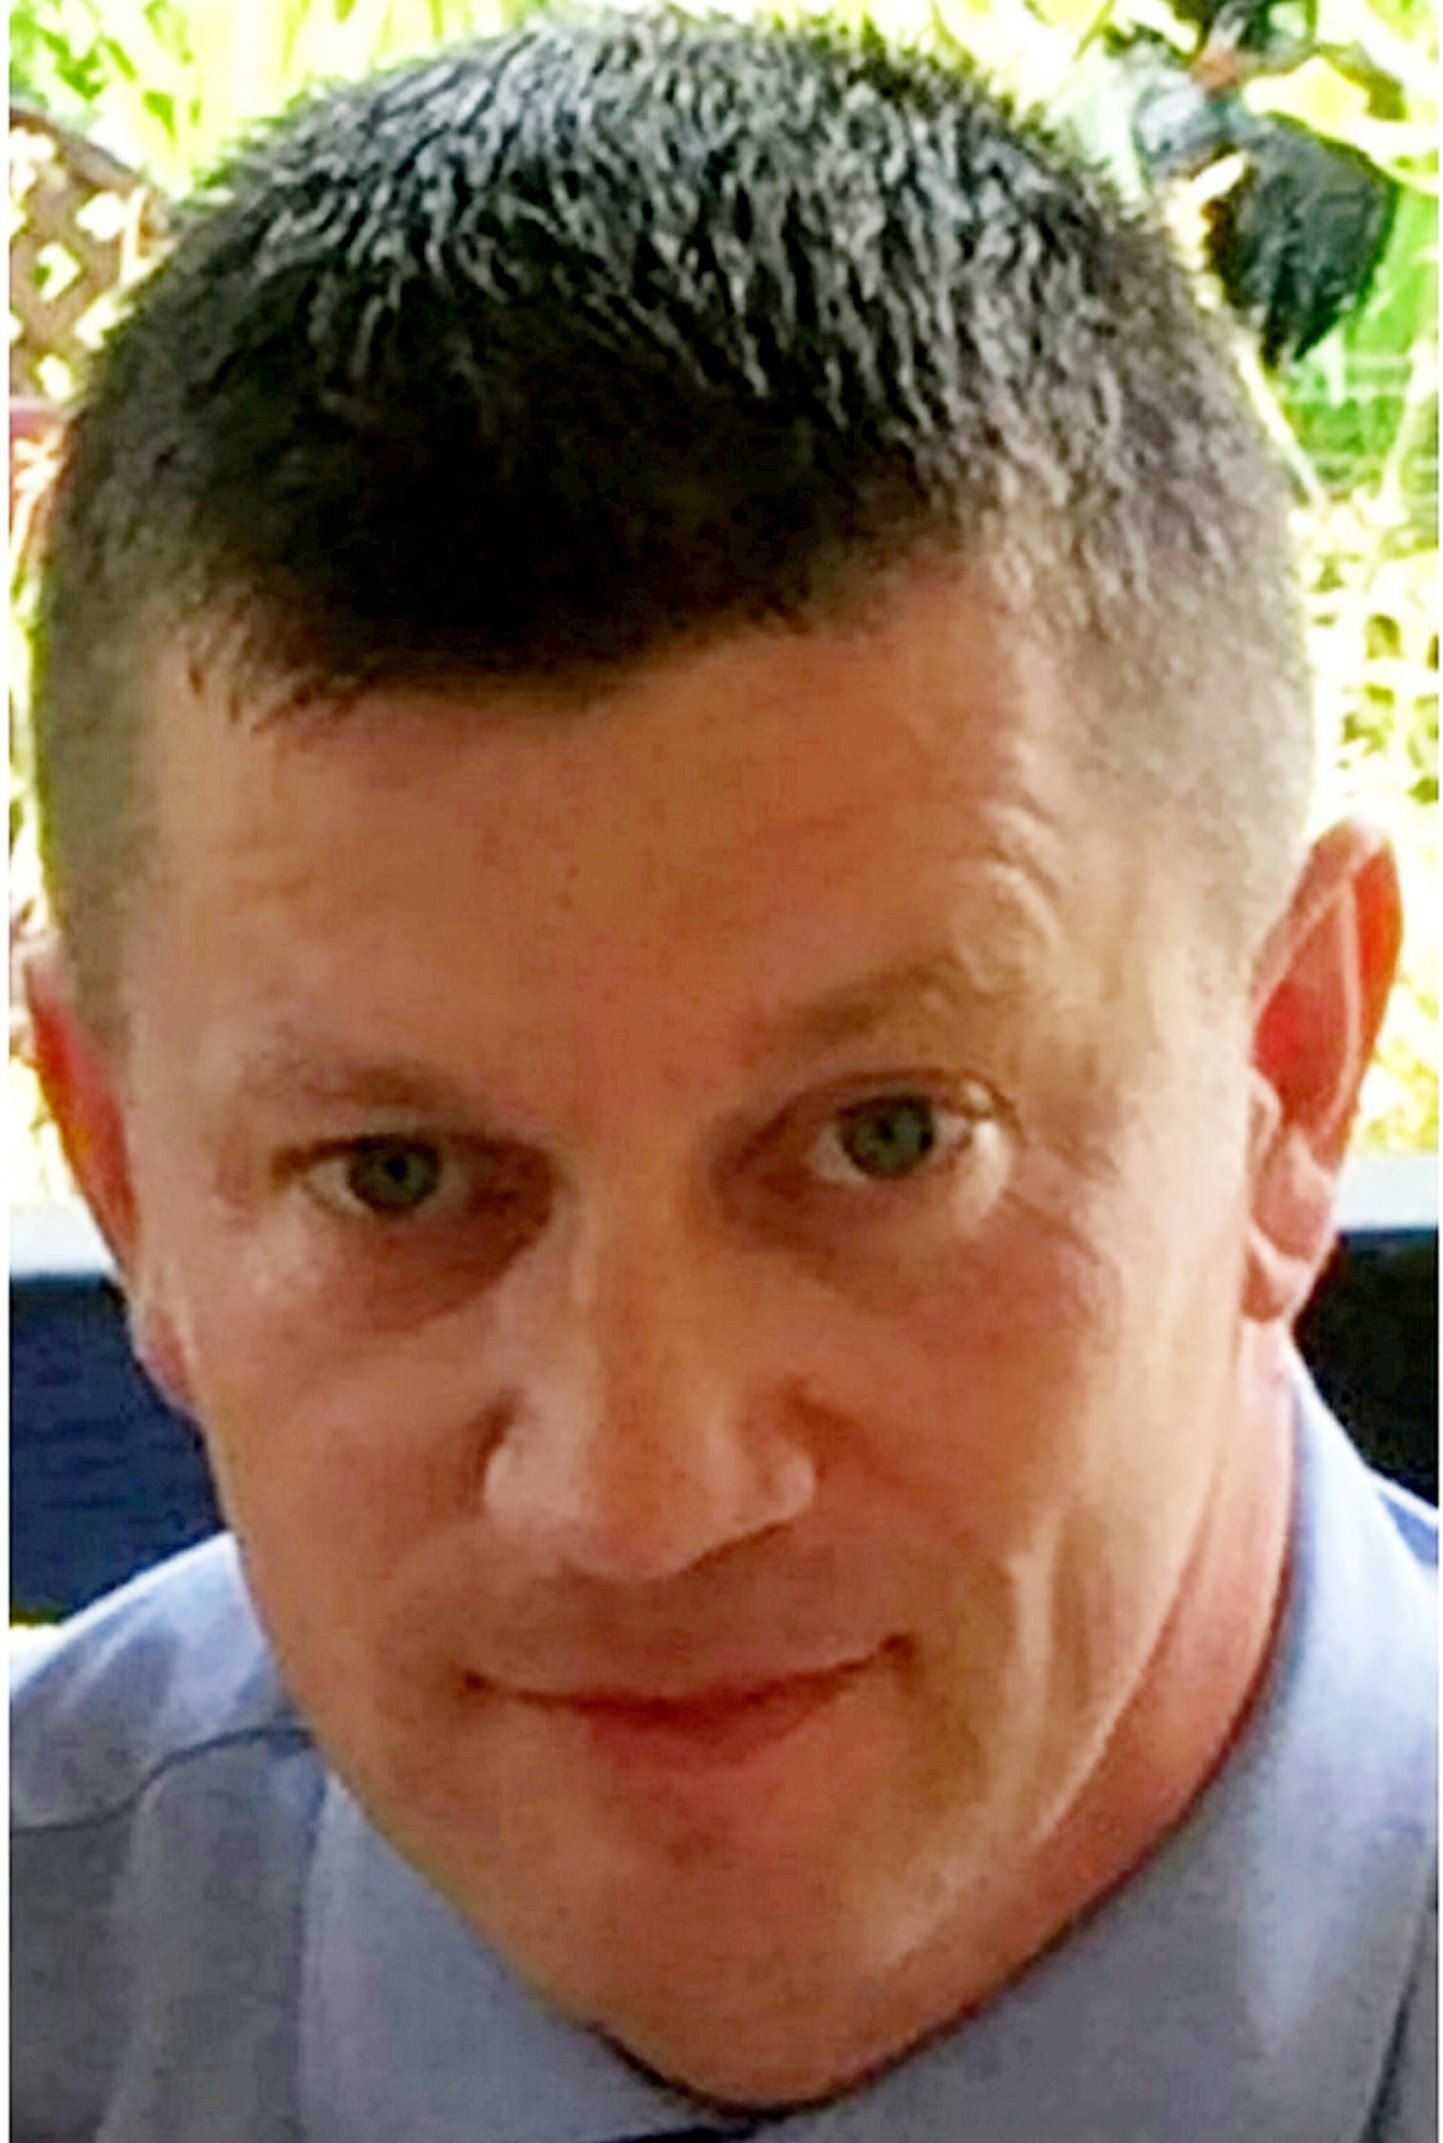 "PC Keith Palmer. Lives were torn apart ""by 82 seconds of high and terrible drama"" in the Westminster terror attack, an inquest has heard as police said PC Keith Palmer paid the ""ultimate sacrifice"" during the rampage. Four members of the public and Pc Keith Palmer died on March 22 last year during a rampage by Khalid Masood. In that time, Masood, 52, drove into pedestrians on Westminster Bridge, killing American tourist Kurt Cochran, 54, retired window cleaner Leslie Rhodes, 75, Aysha Frade, 44, and Romanian tourist Andreea Cristea, 31. He then stabbed PC Palmer who was on guard at the Palace of Westminster. On Monday, Chief Coroner Mark Lucraft QC began the inquests into the victims' deaths in Court One of the Old Bailey."